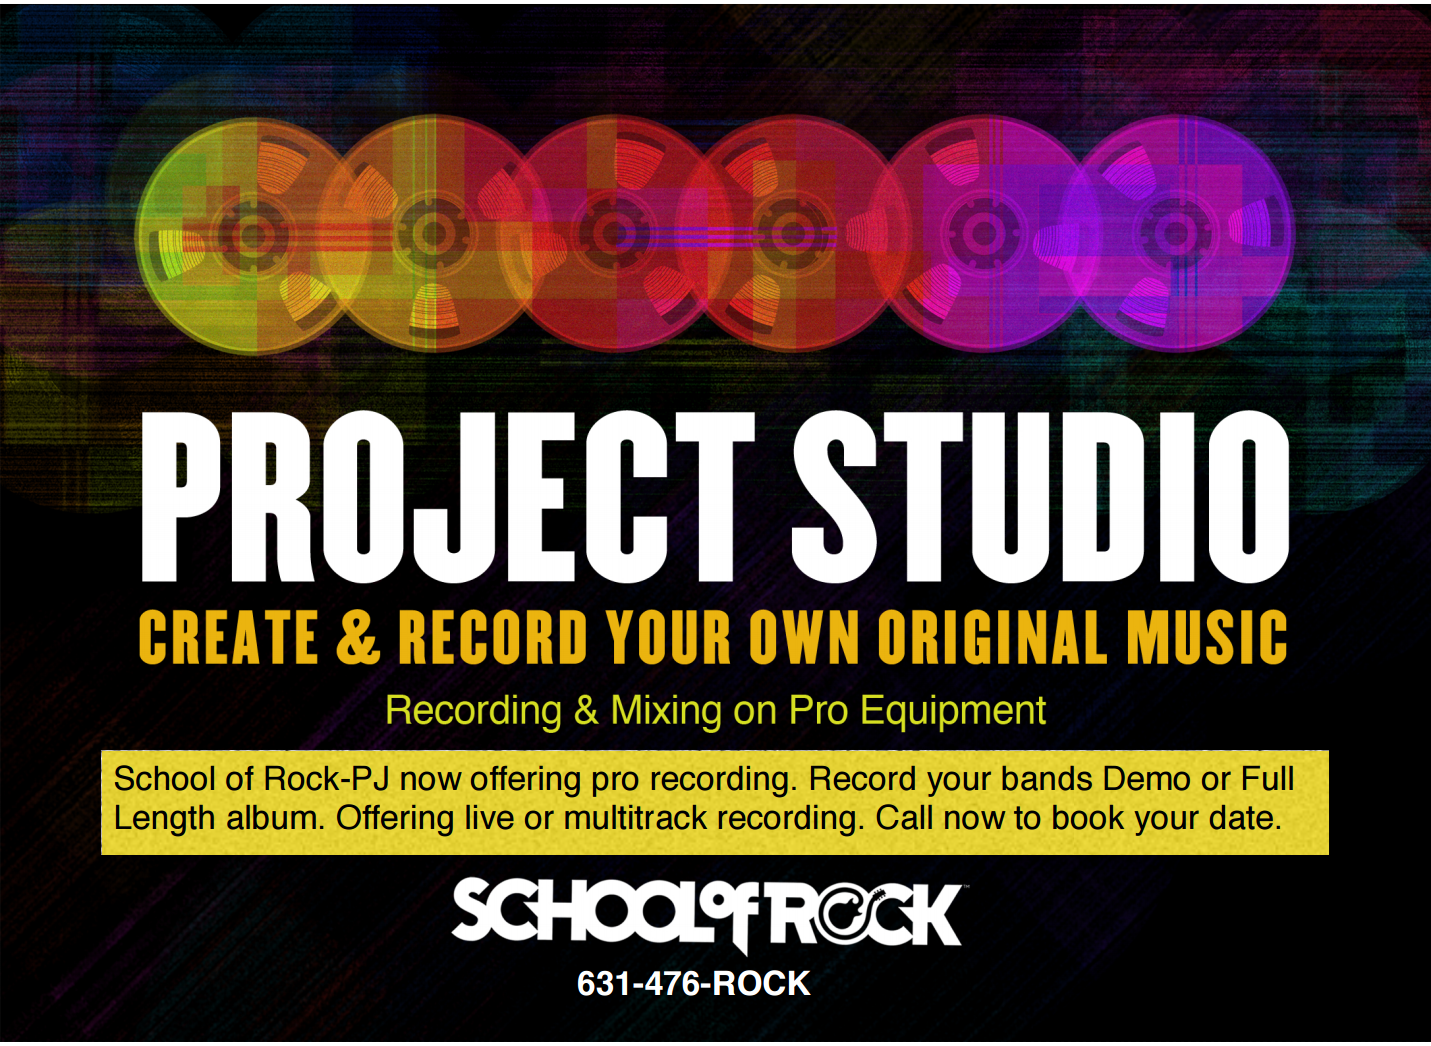 Image of Project Studio